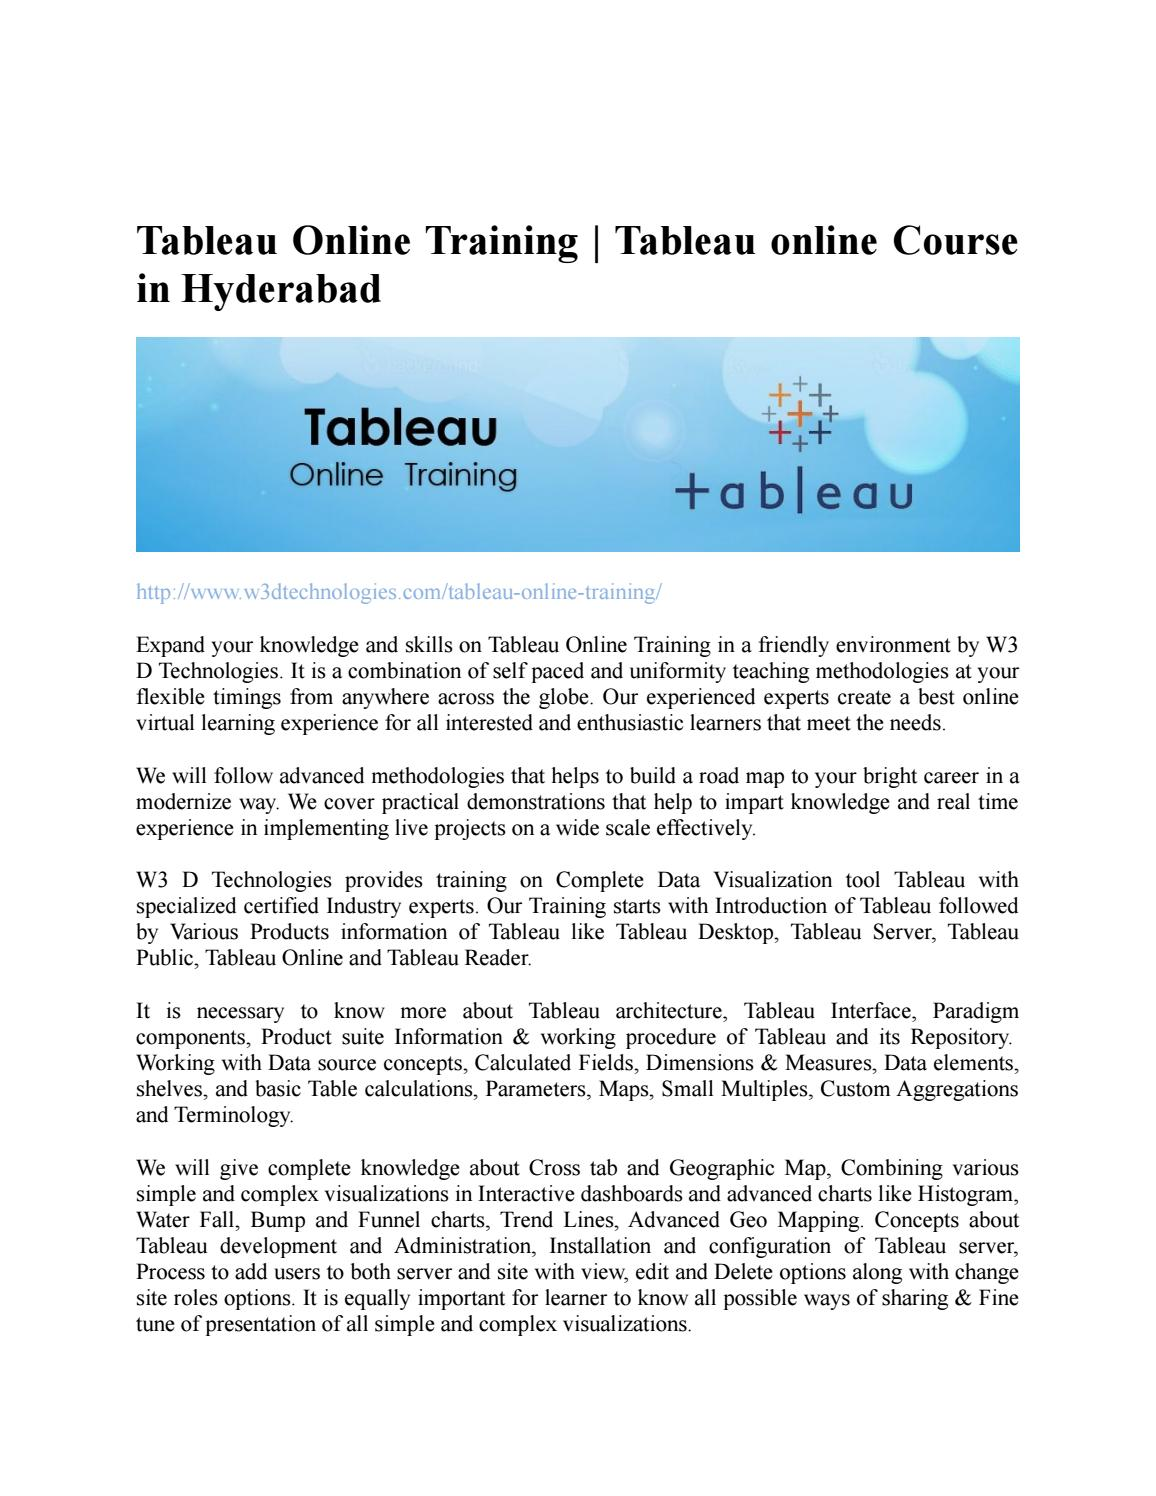 Tableau online training in Hyderabad by kiran - issuu